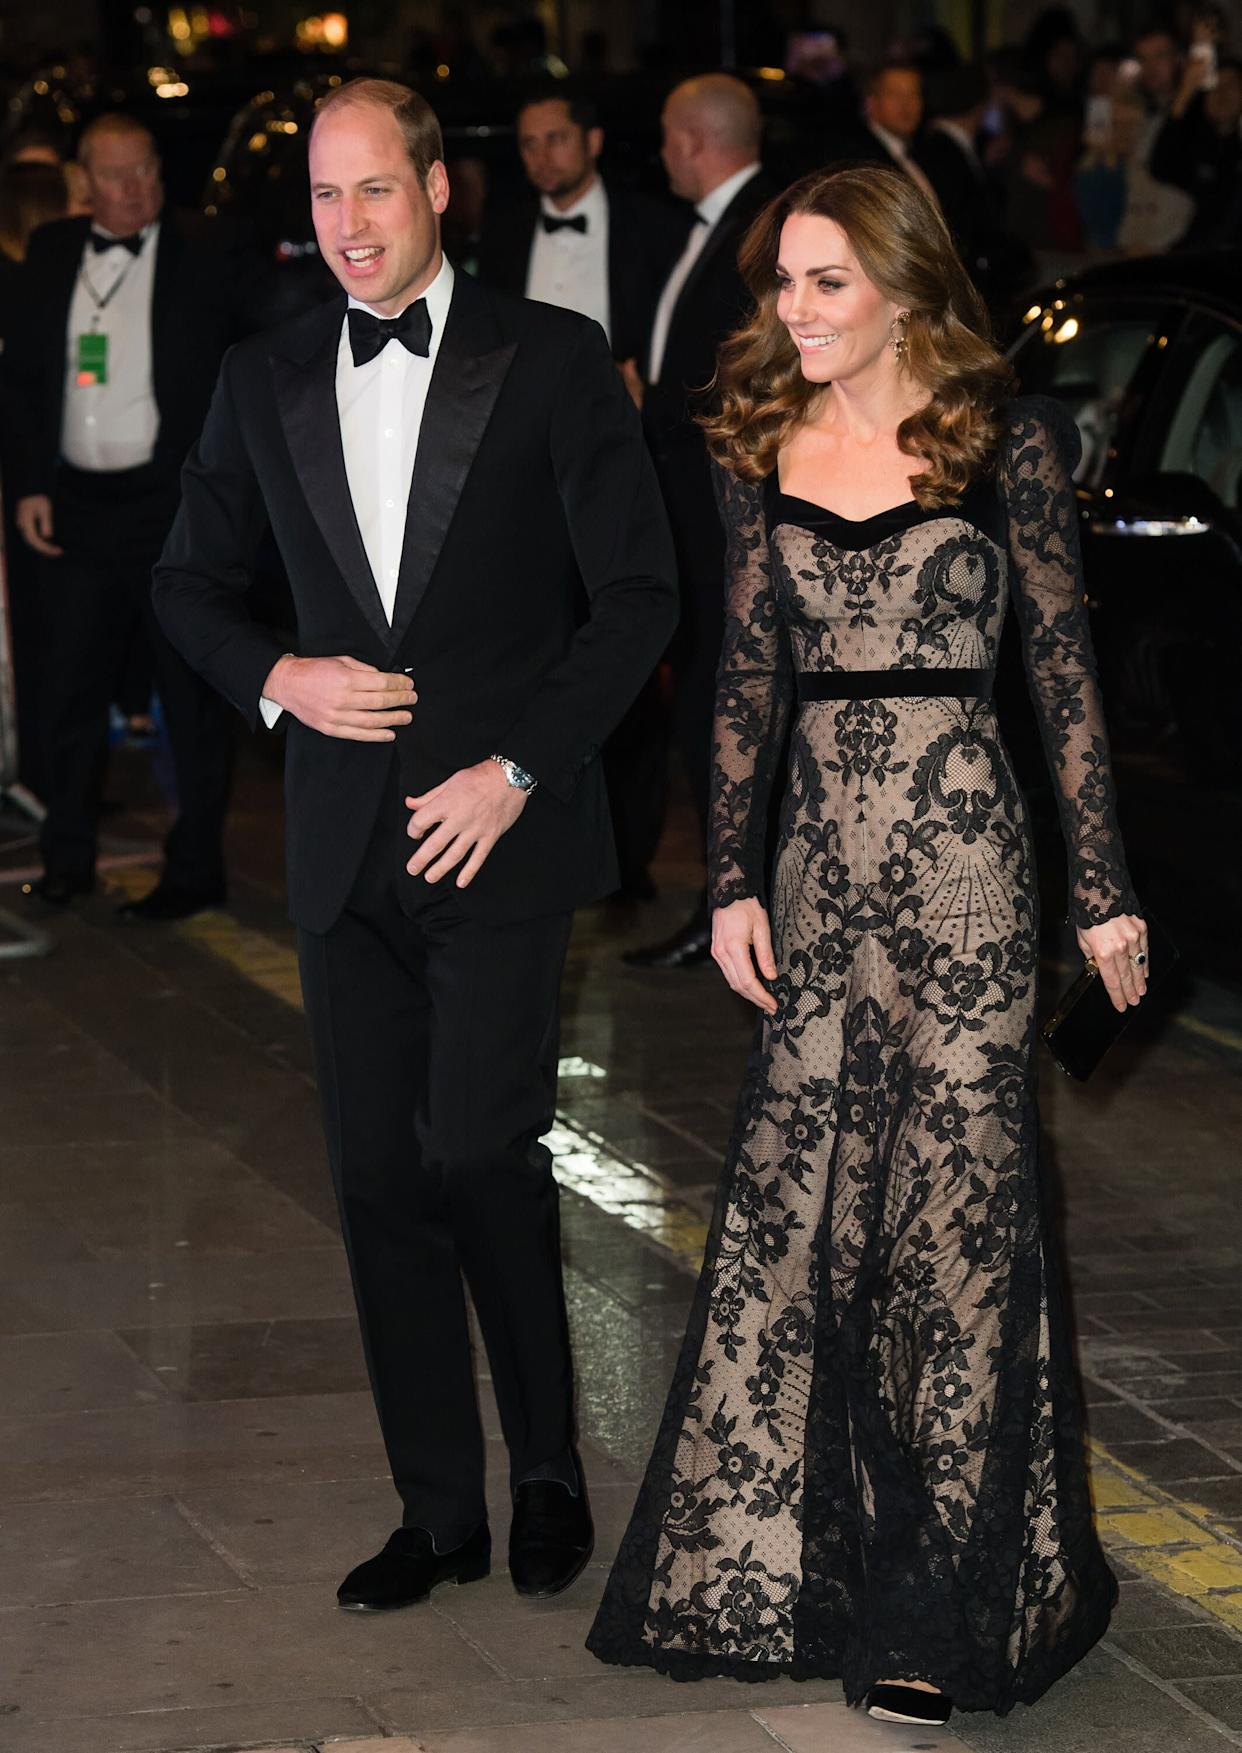 The Duke and Duchess of Cambridge attend the Royal Variety Performance on Nov. 18 in London. (Photo: Samir Hussein via Getty Images)